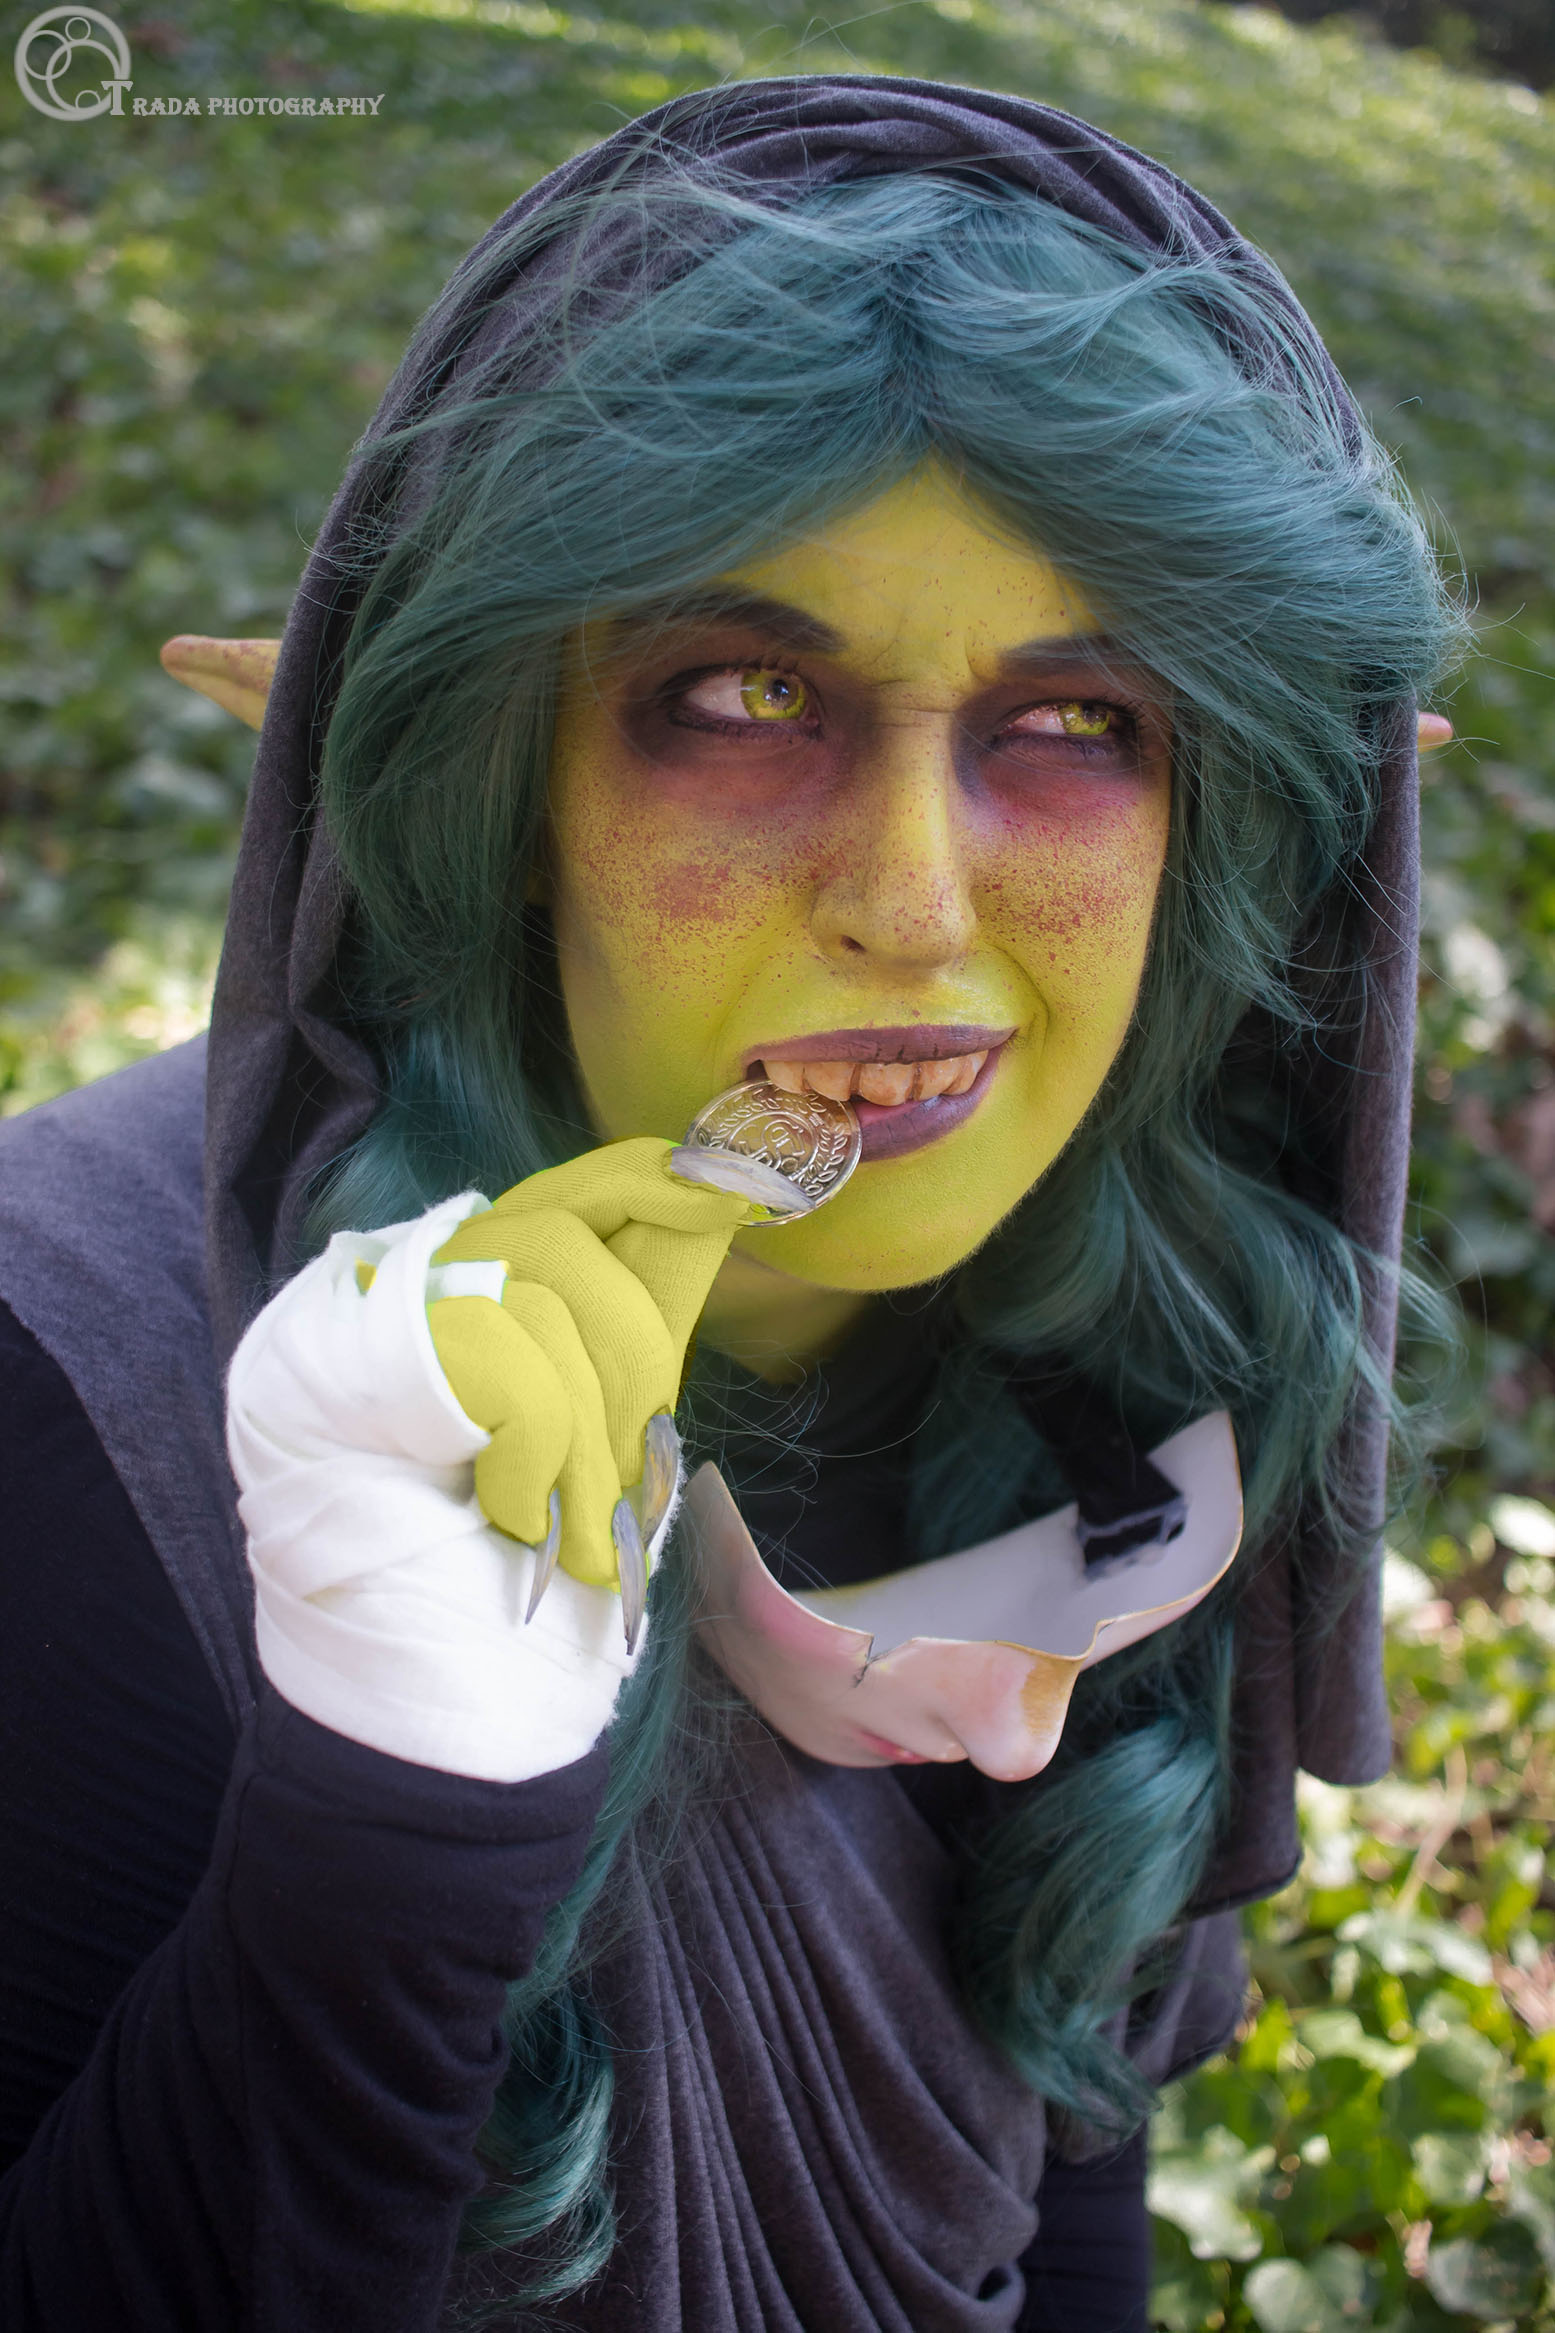 Photo of Effing Creations as Nott from Critical Role. Photo taken by Tradanui